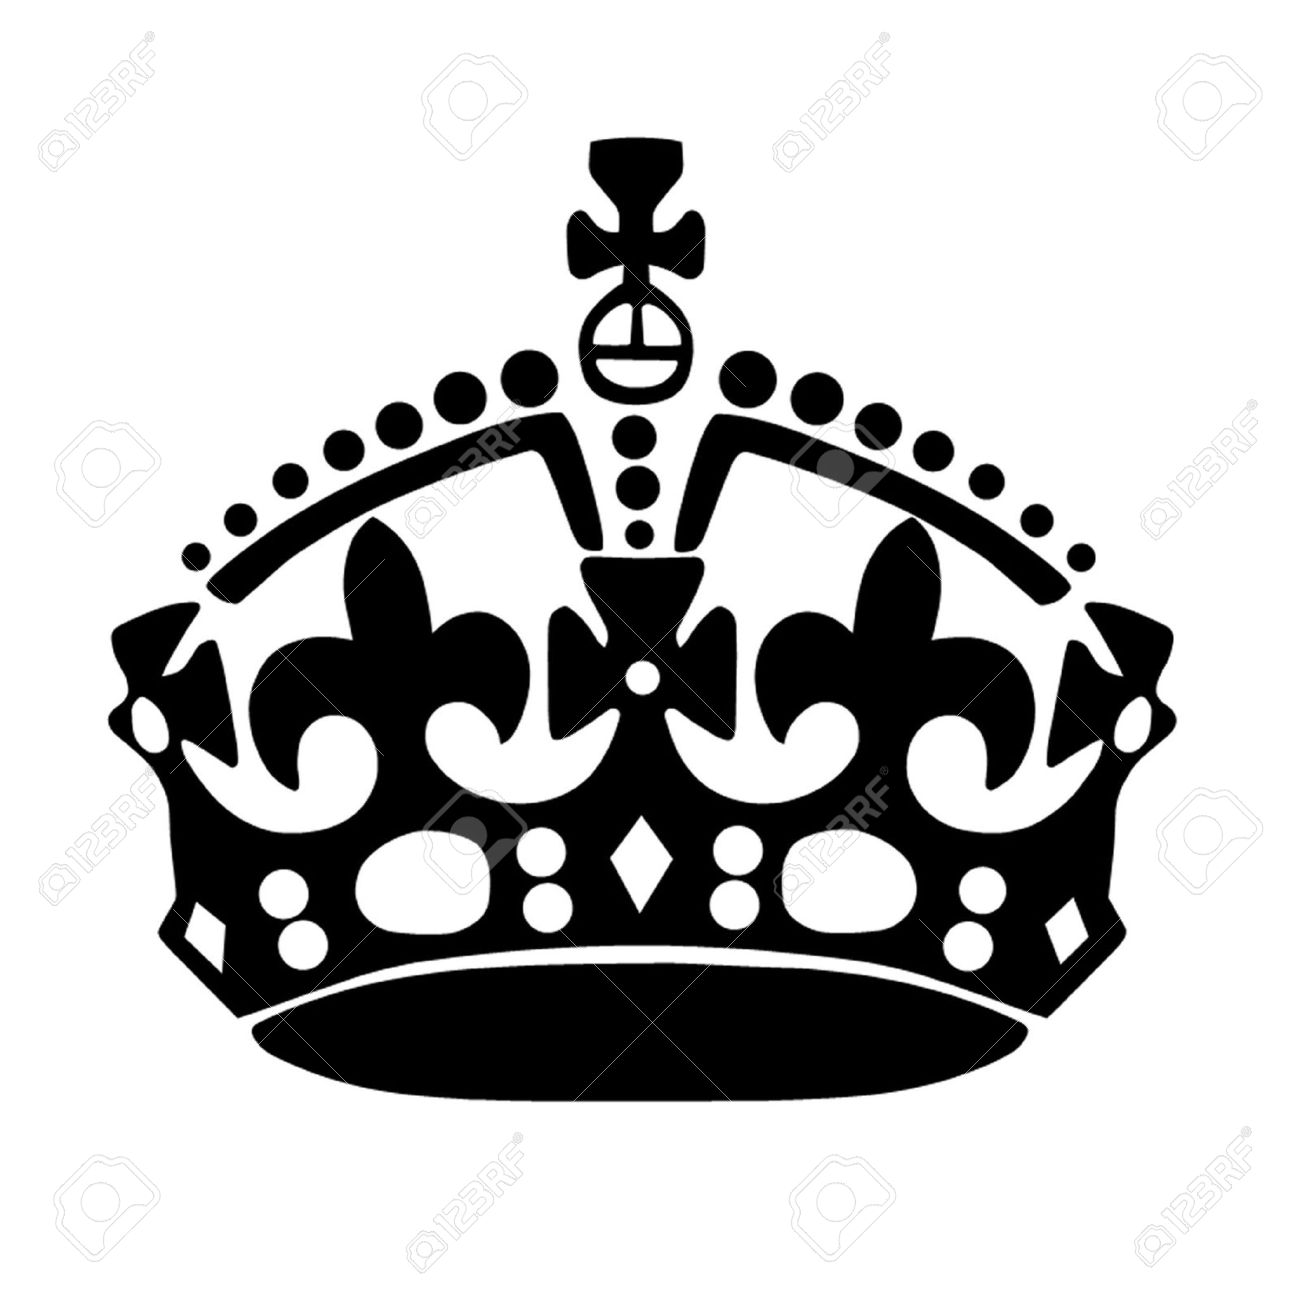 keep calm crown royalty free cliparts vectors and stock rh 123rf com keep calm crown vector cdr keep calm crown vector ai